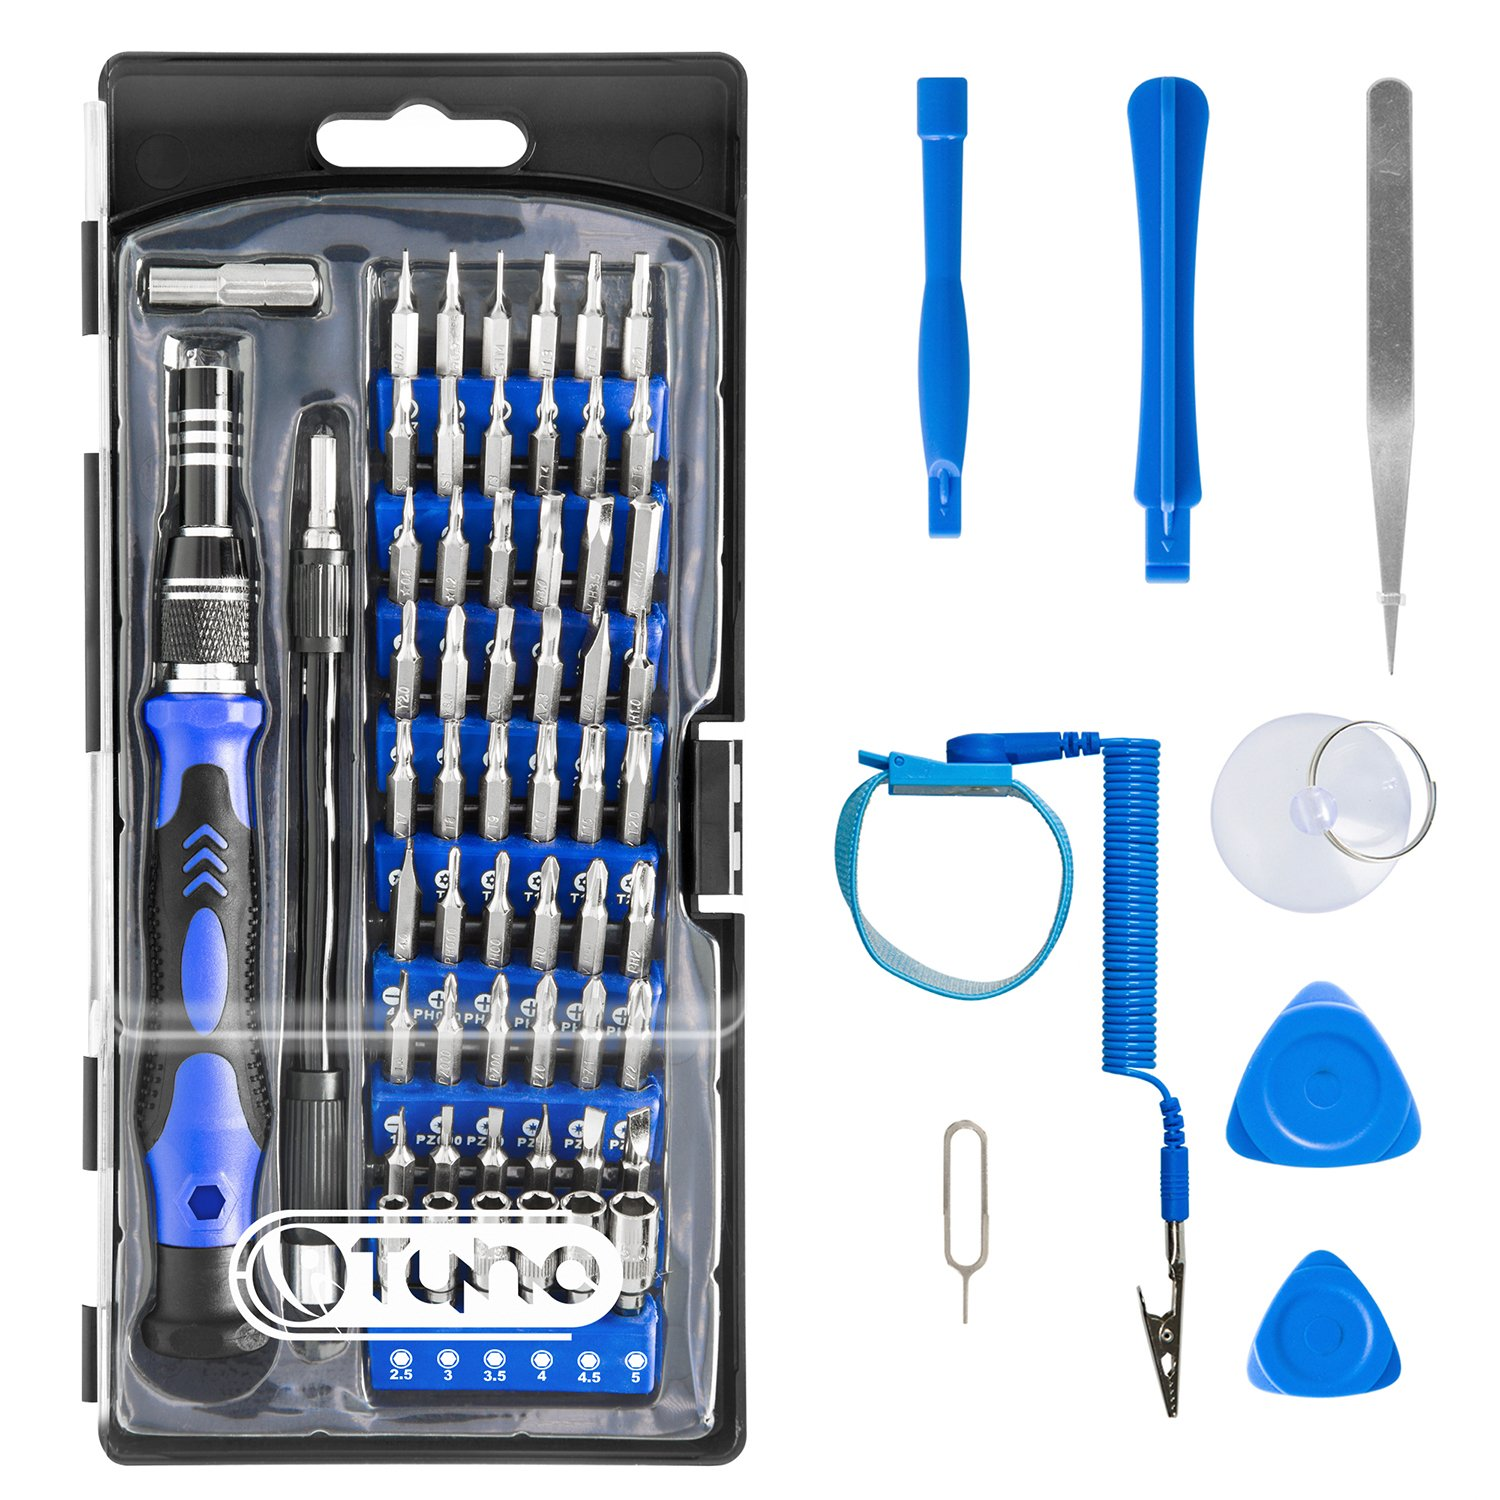 Precision Screwdriver Set TyhoTech 65 in 1 Magnetic Screwdriver Set Repair Tools Kit with 54 Bits Driver Kit for iPhone iPad Laptop Smartphones MacBook PC Watches Xbox Glasses Cameras